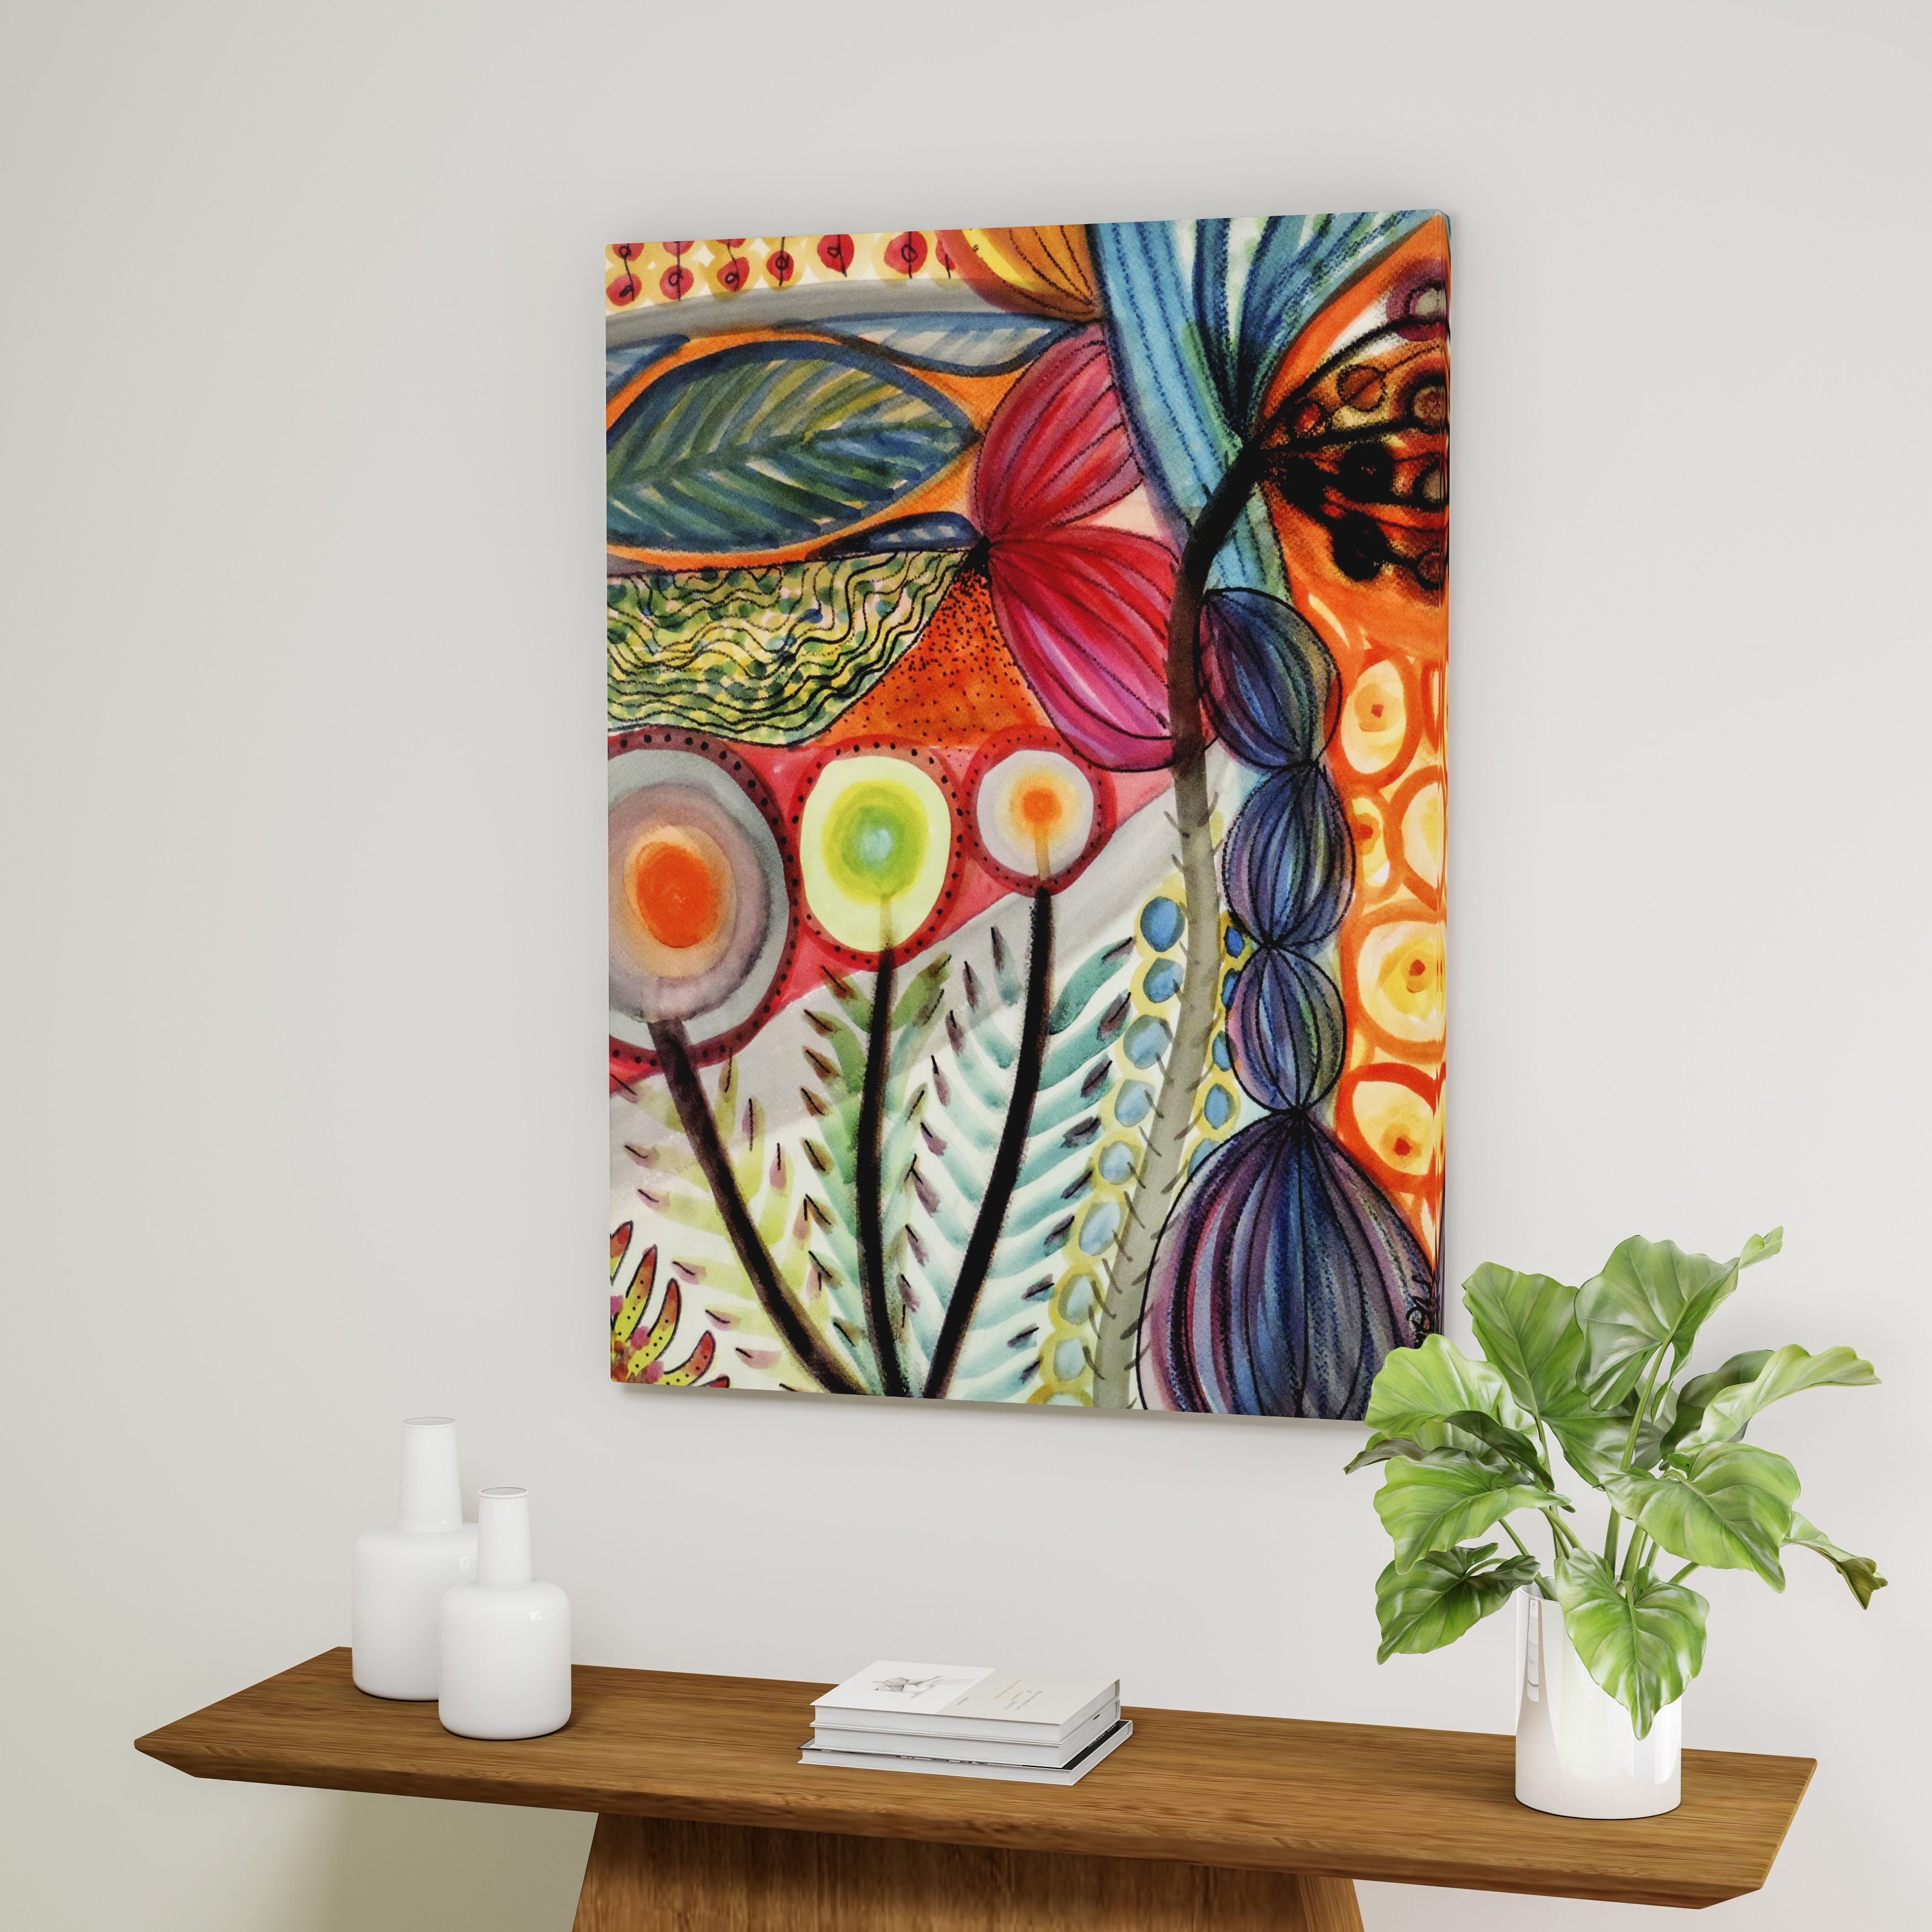 Size extra large art gallery shop our best home goods deals online at overstock com